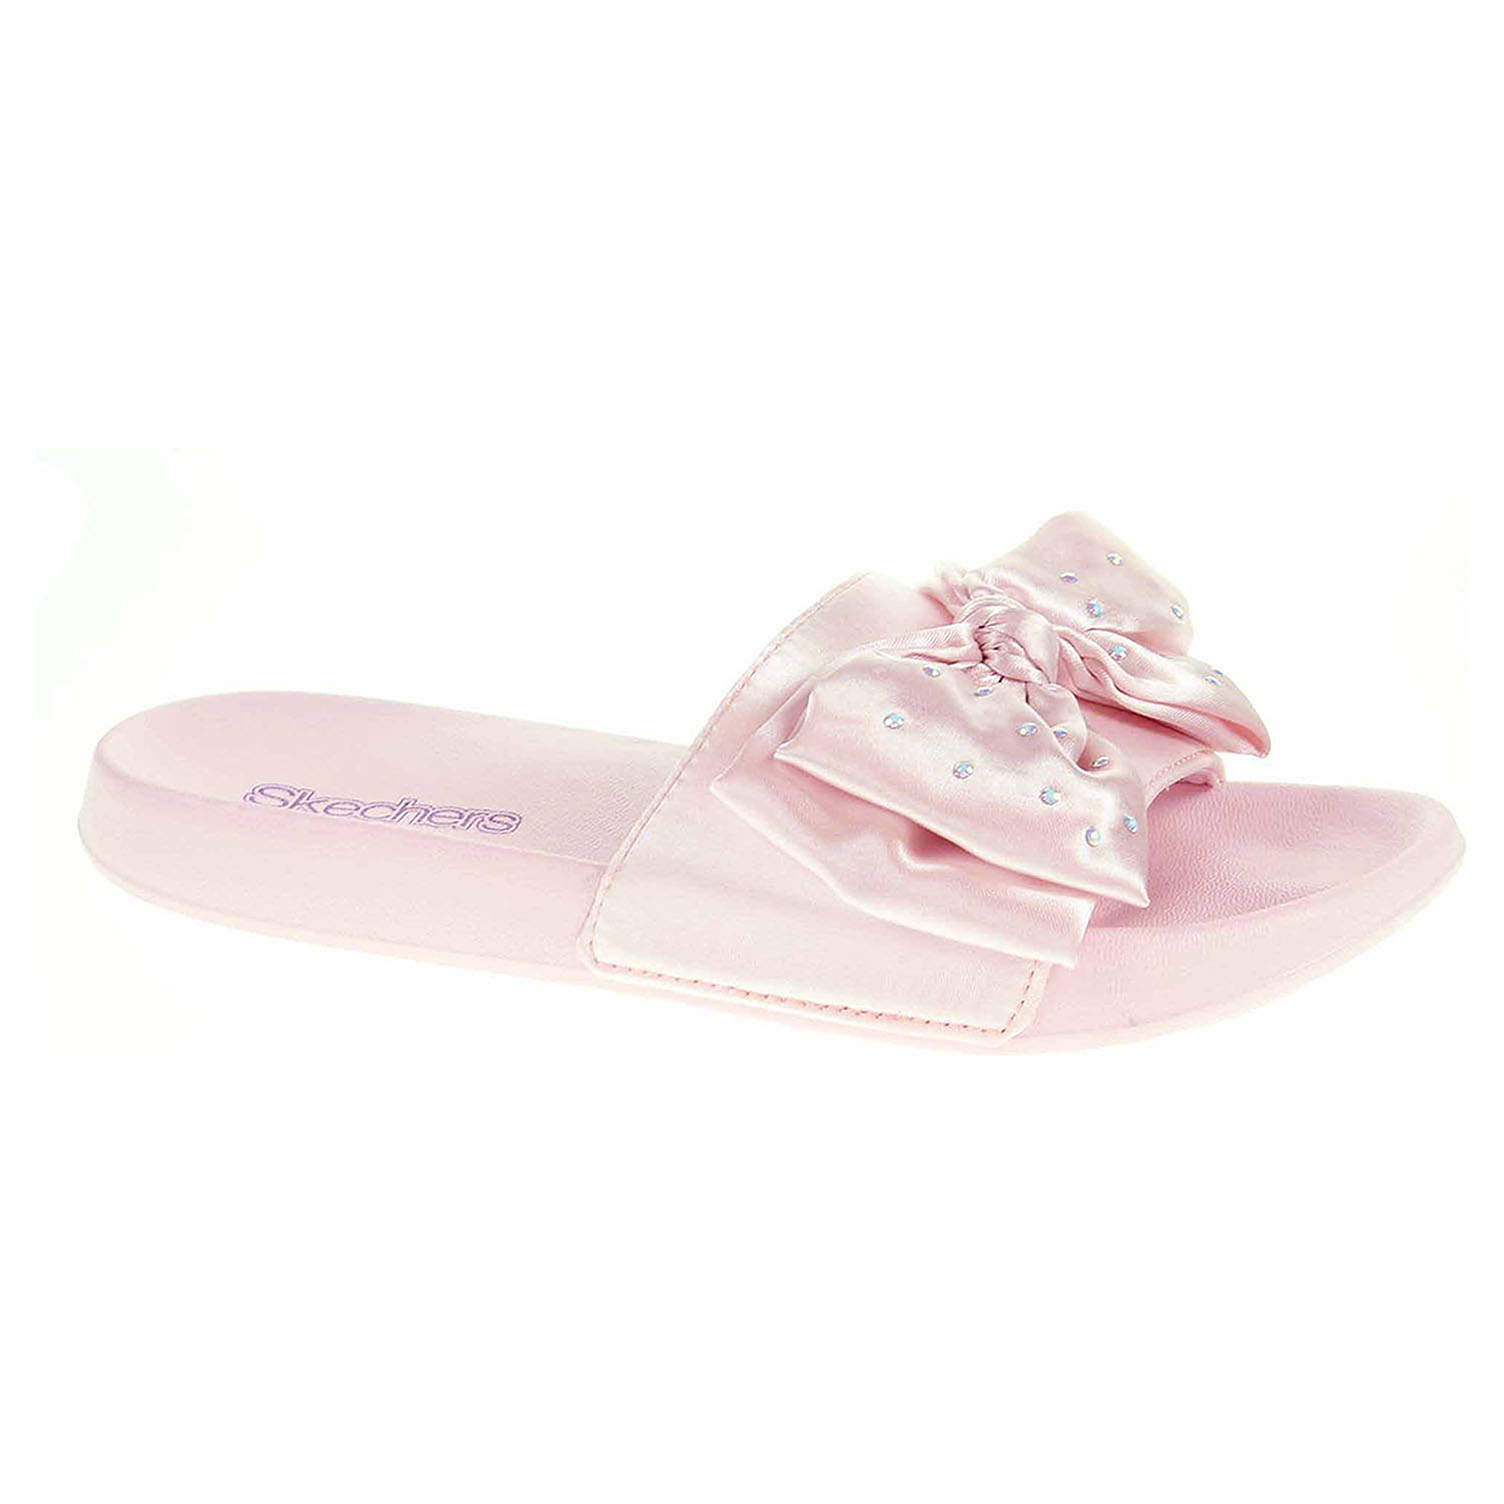 detail Skechers Sunny Slides - Satin Shimmy pink